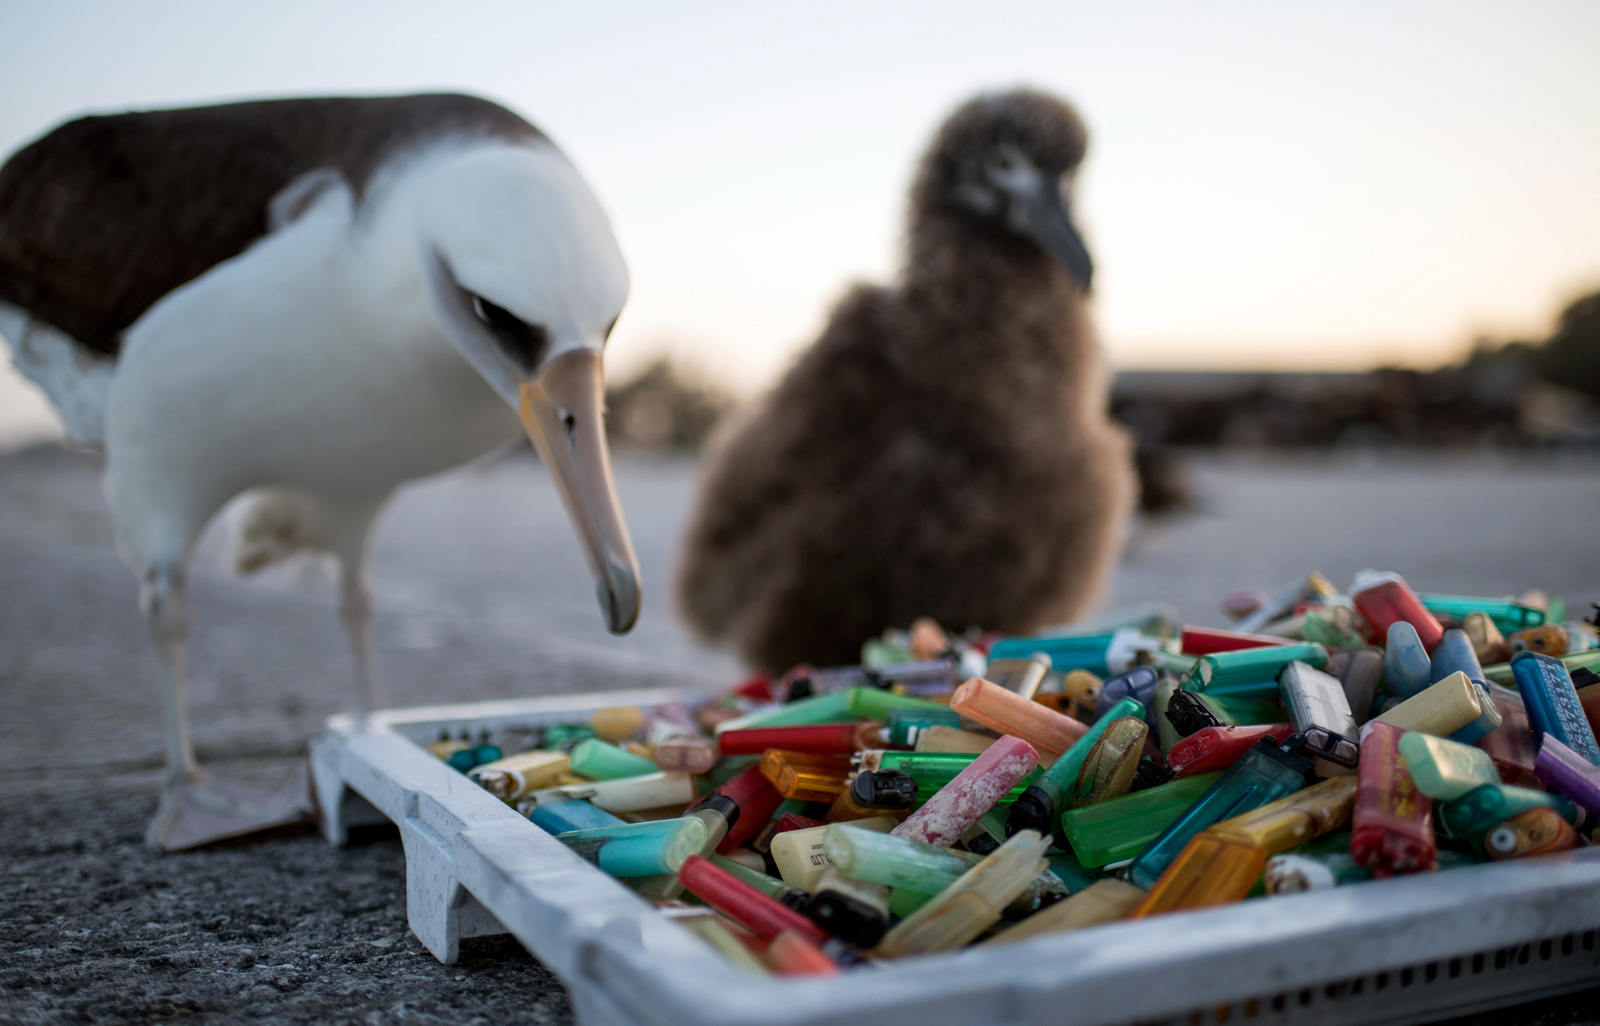 a laysan albatross contemplating a pan of plastic lighters